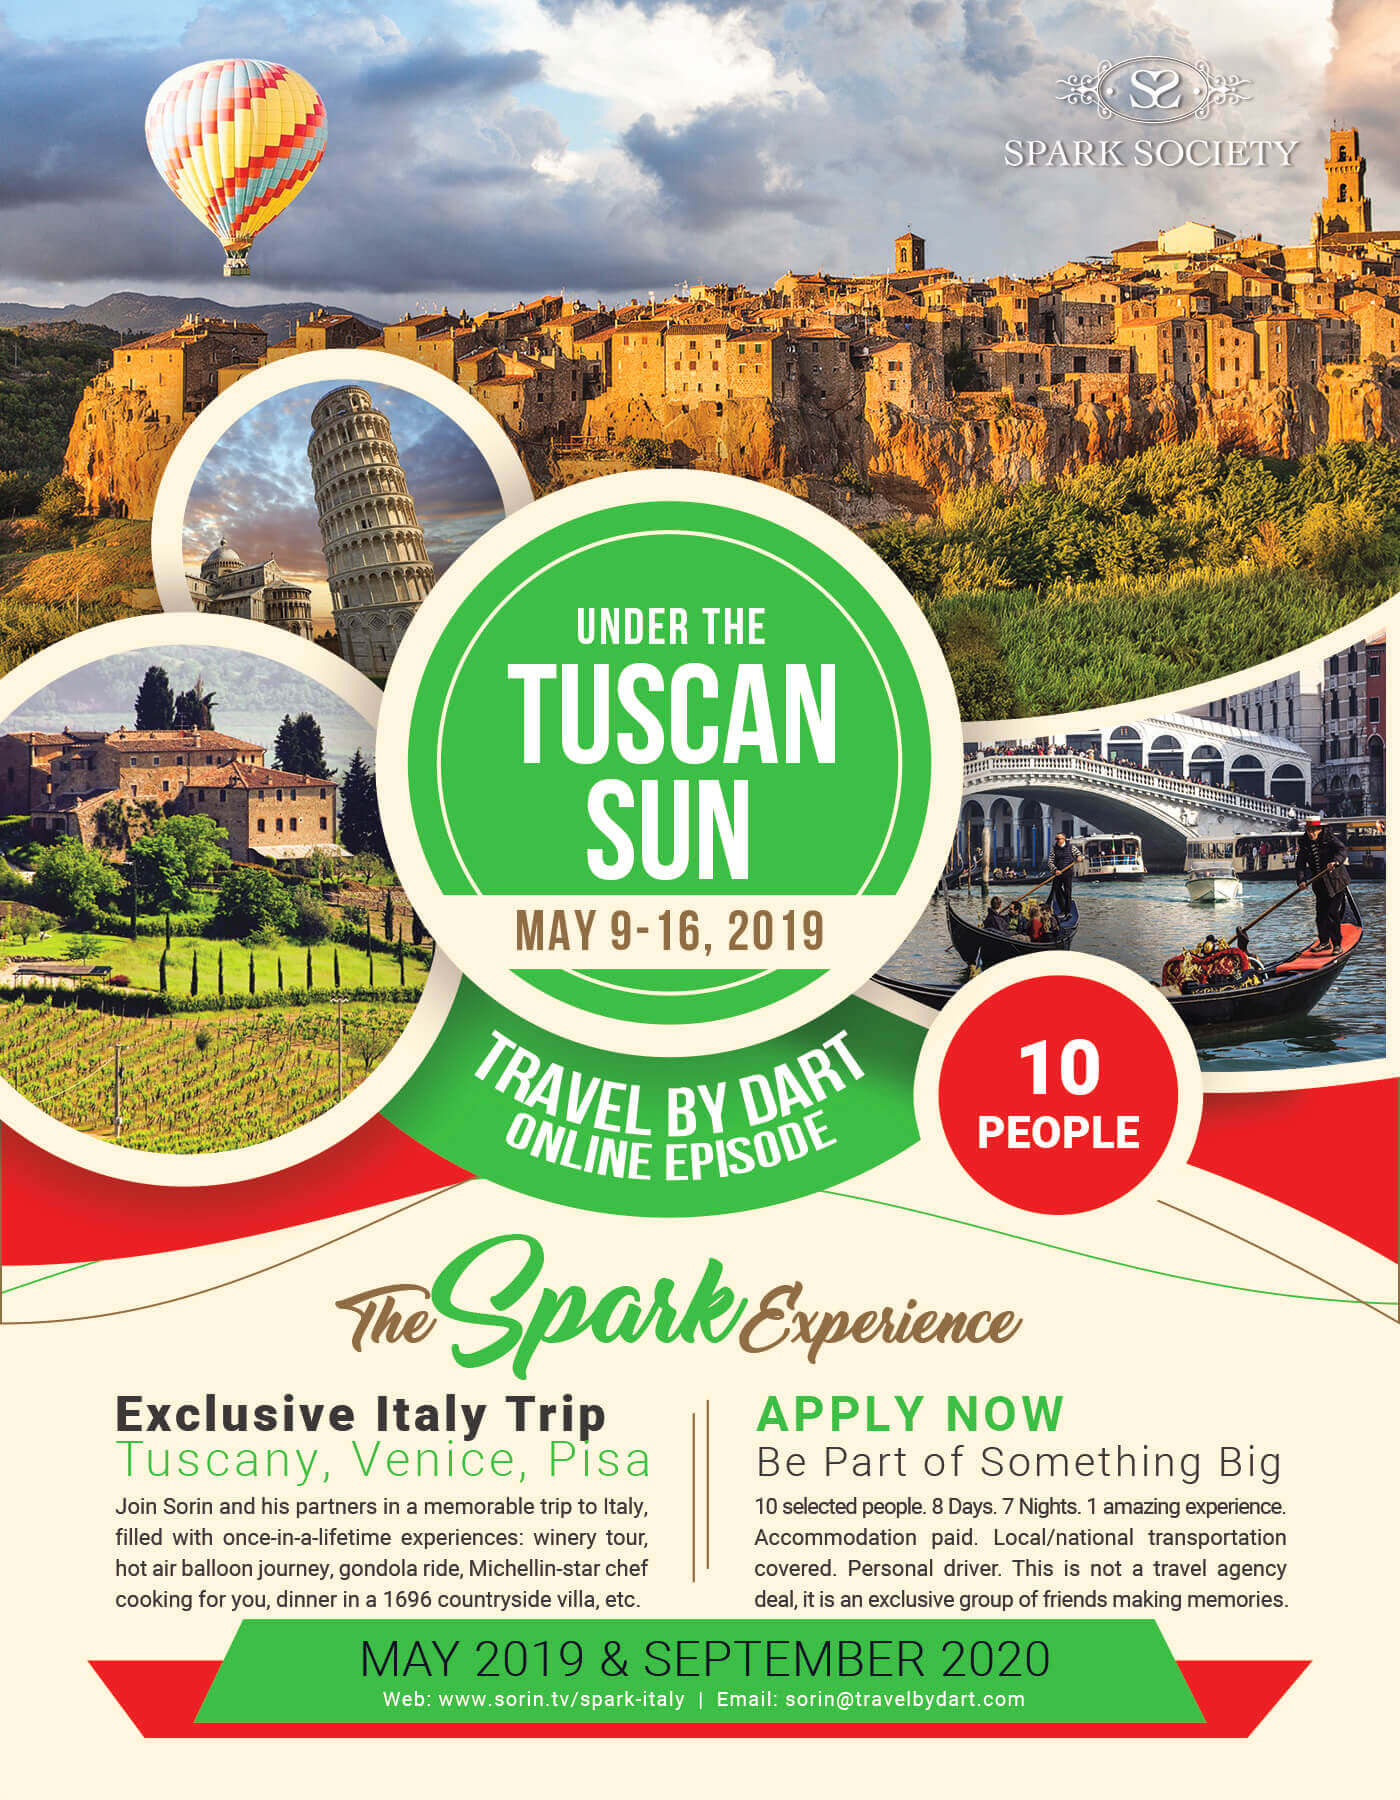 italy tour packages including airfare